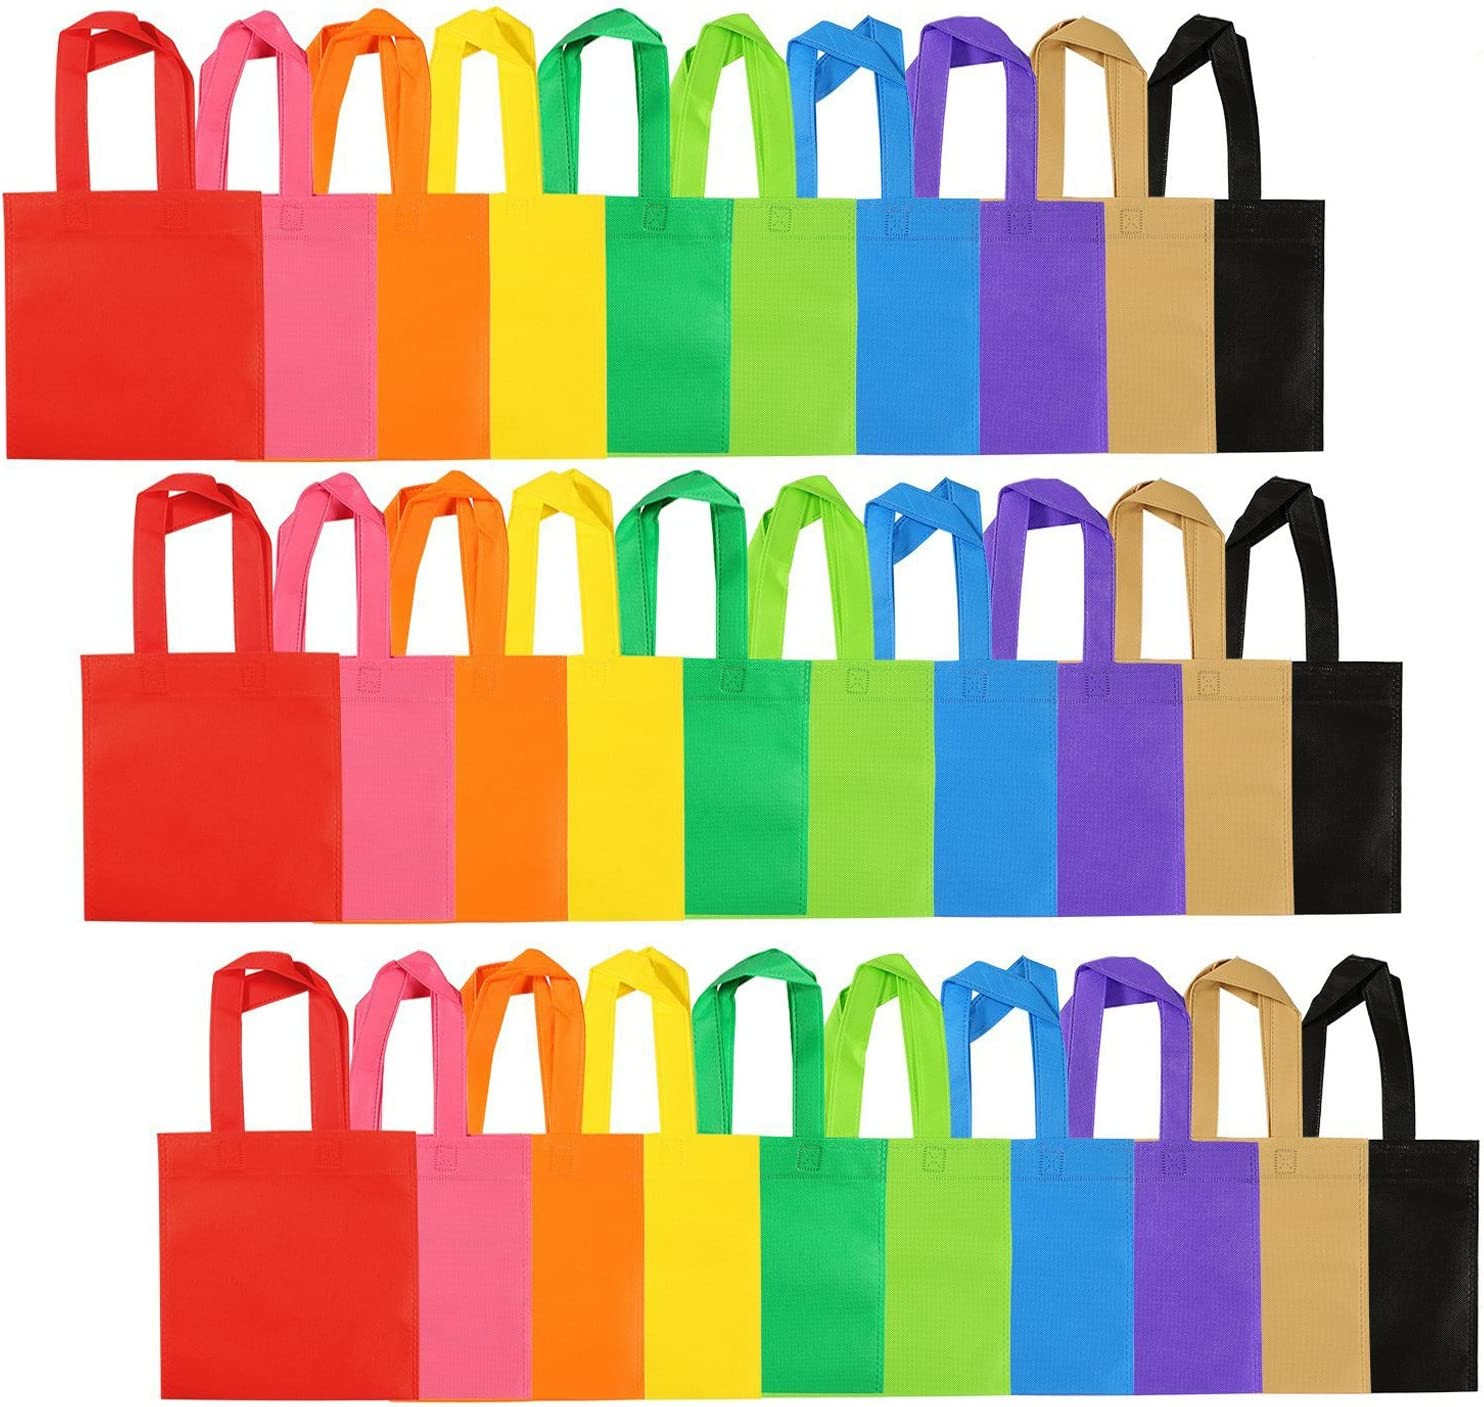 Aneco 40 Pieces Non-woven Treat Bags Goodies Tote Bags Reusable Gift Party Bags Mini Grocery Bags with Handles for Party Favors 8 by 8 Inches